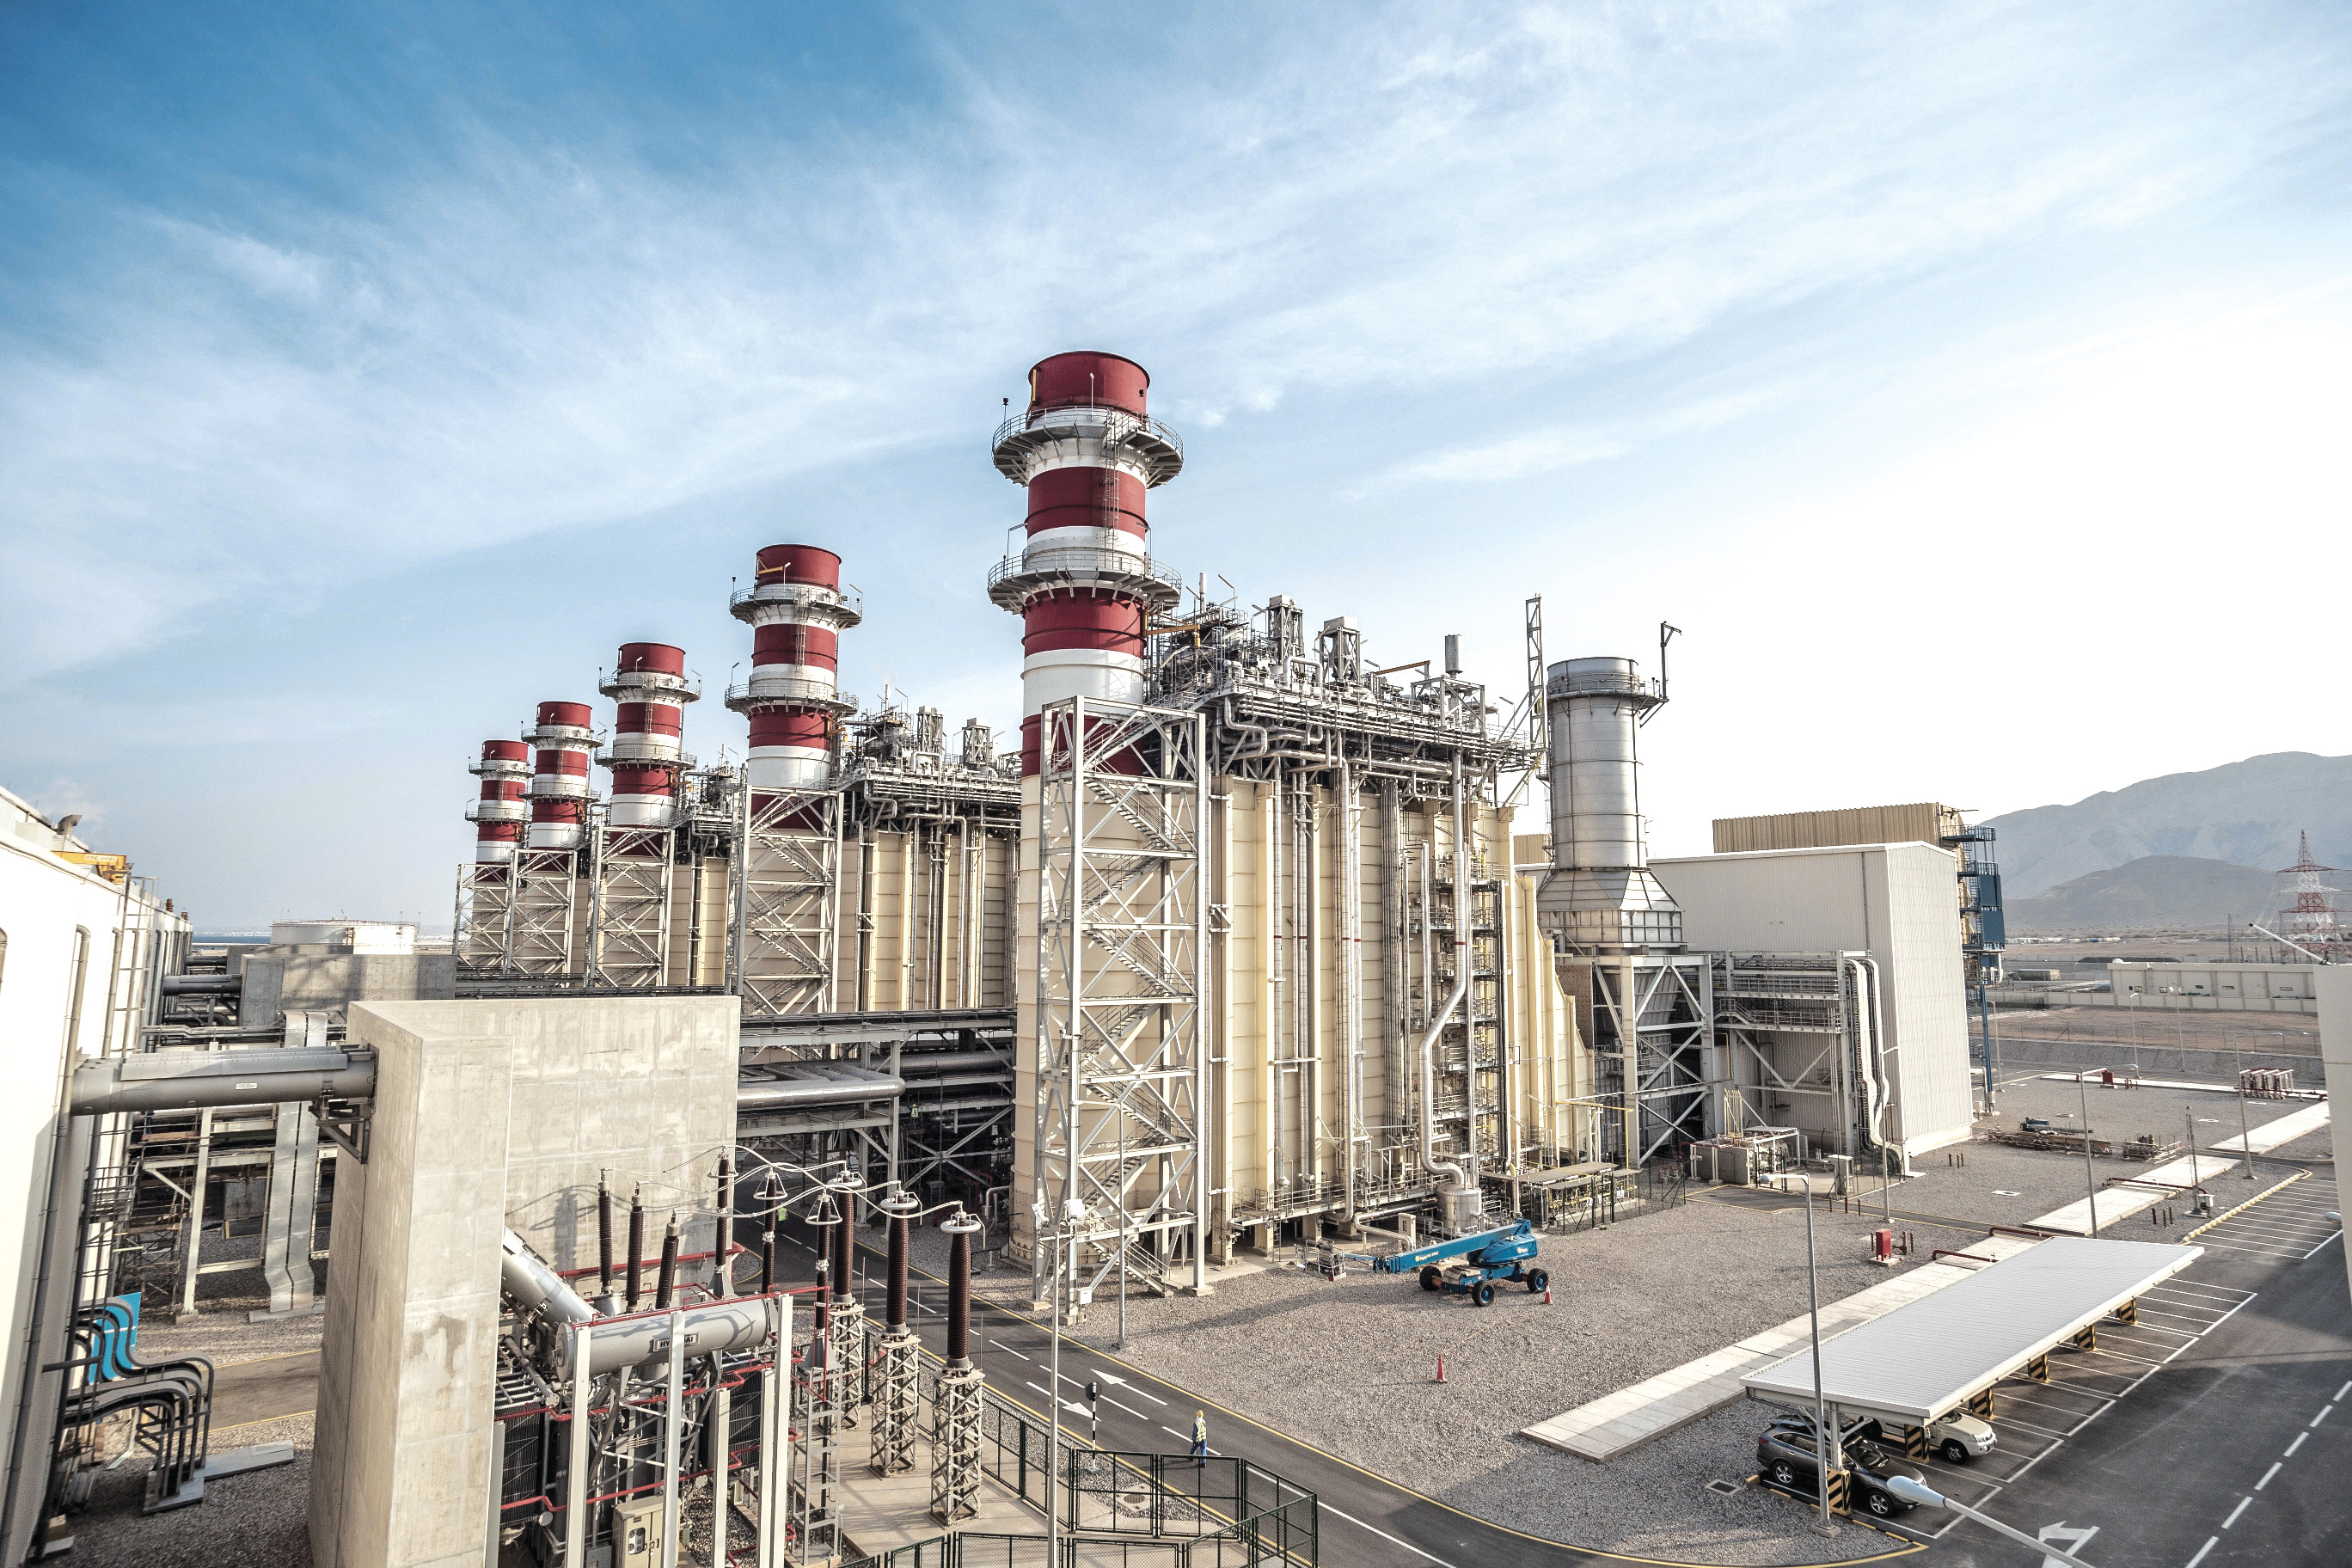 Oman forecasts annual power demand growth at 8% until 2022